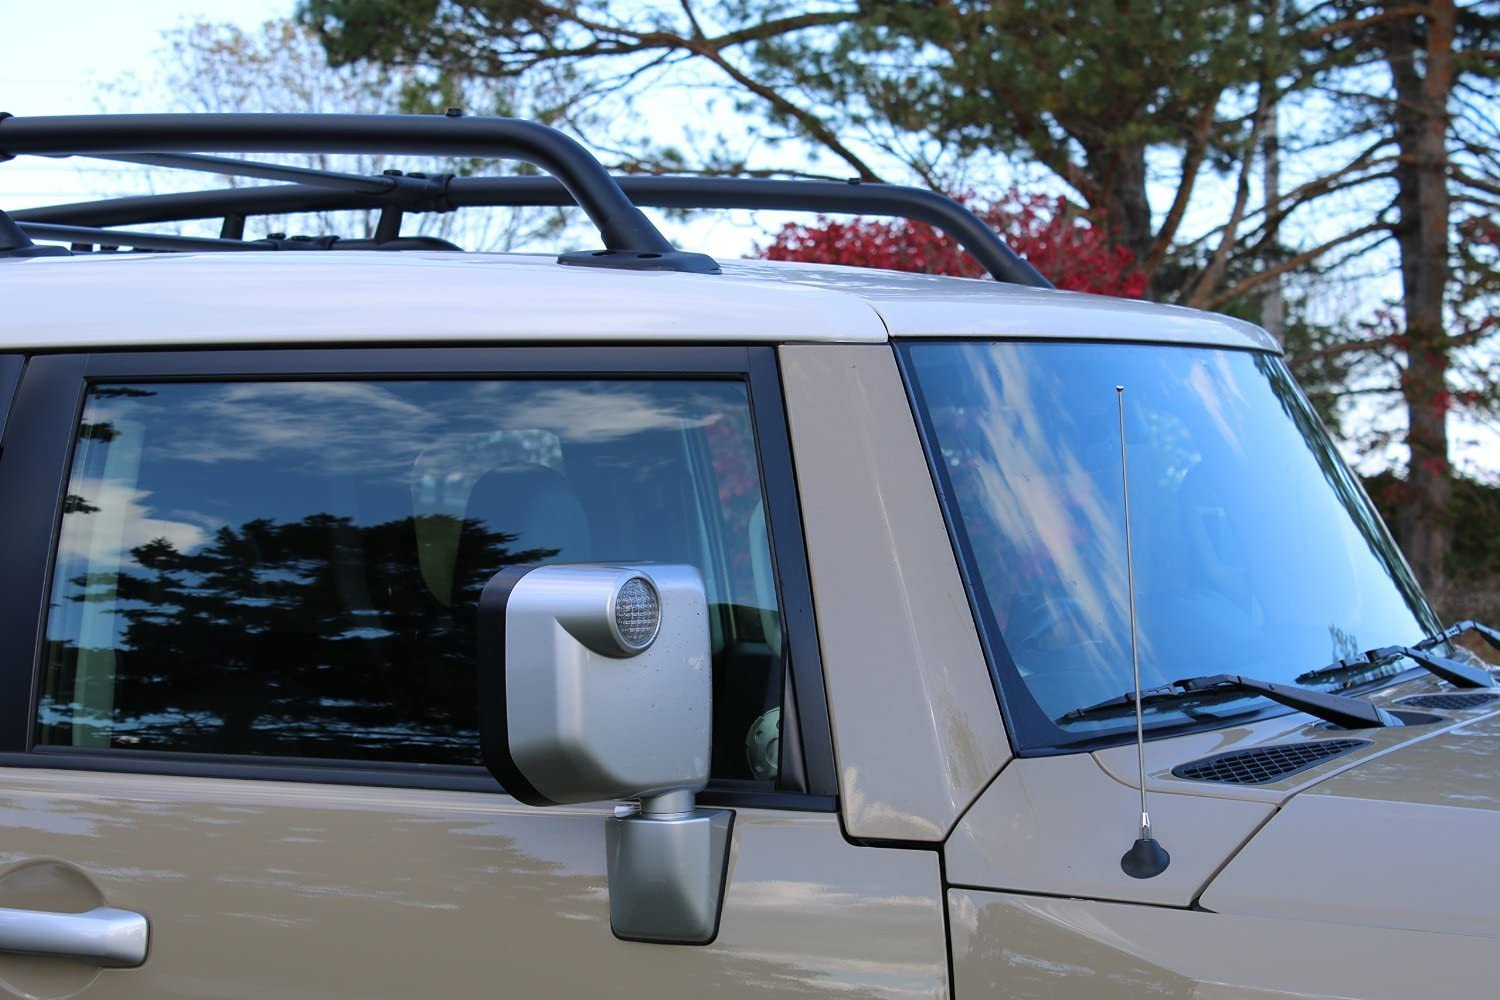 Made in USA 4 Inch Black Aluminum Antenna is Compatible with Ford E-250 Econoline AntennaMastsRus 1992-2015